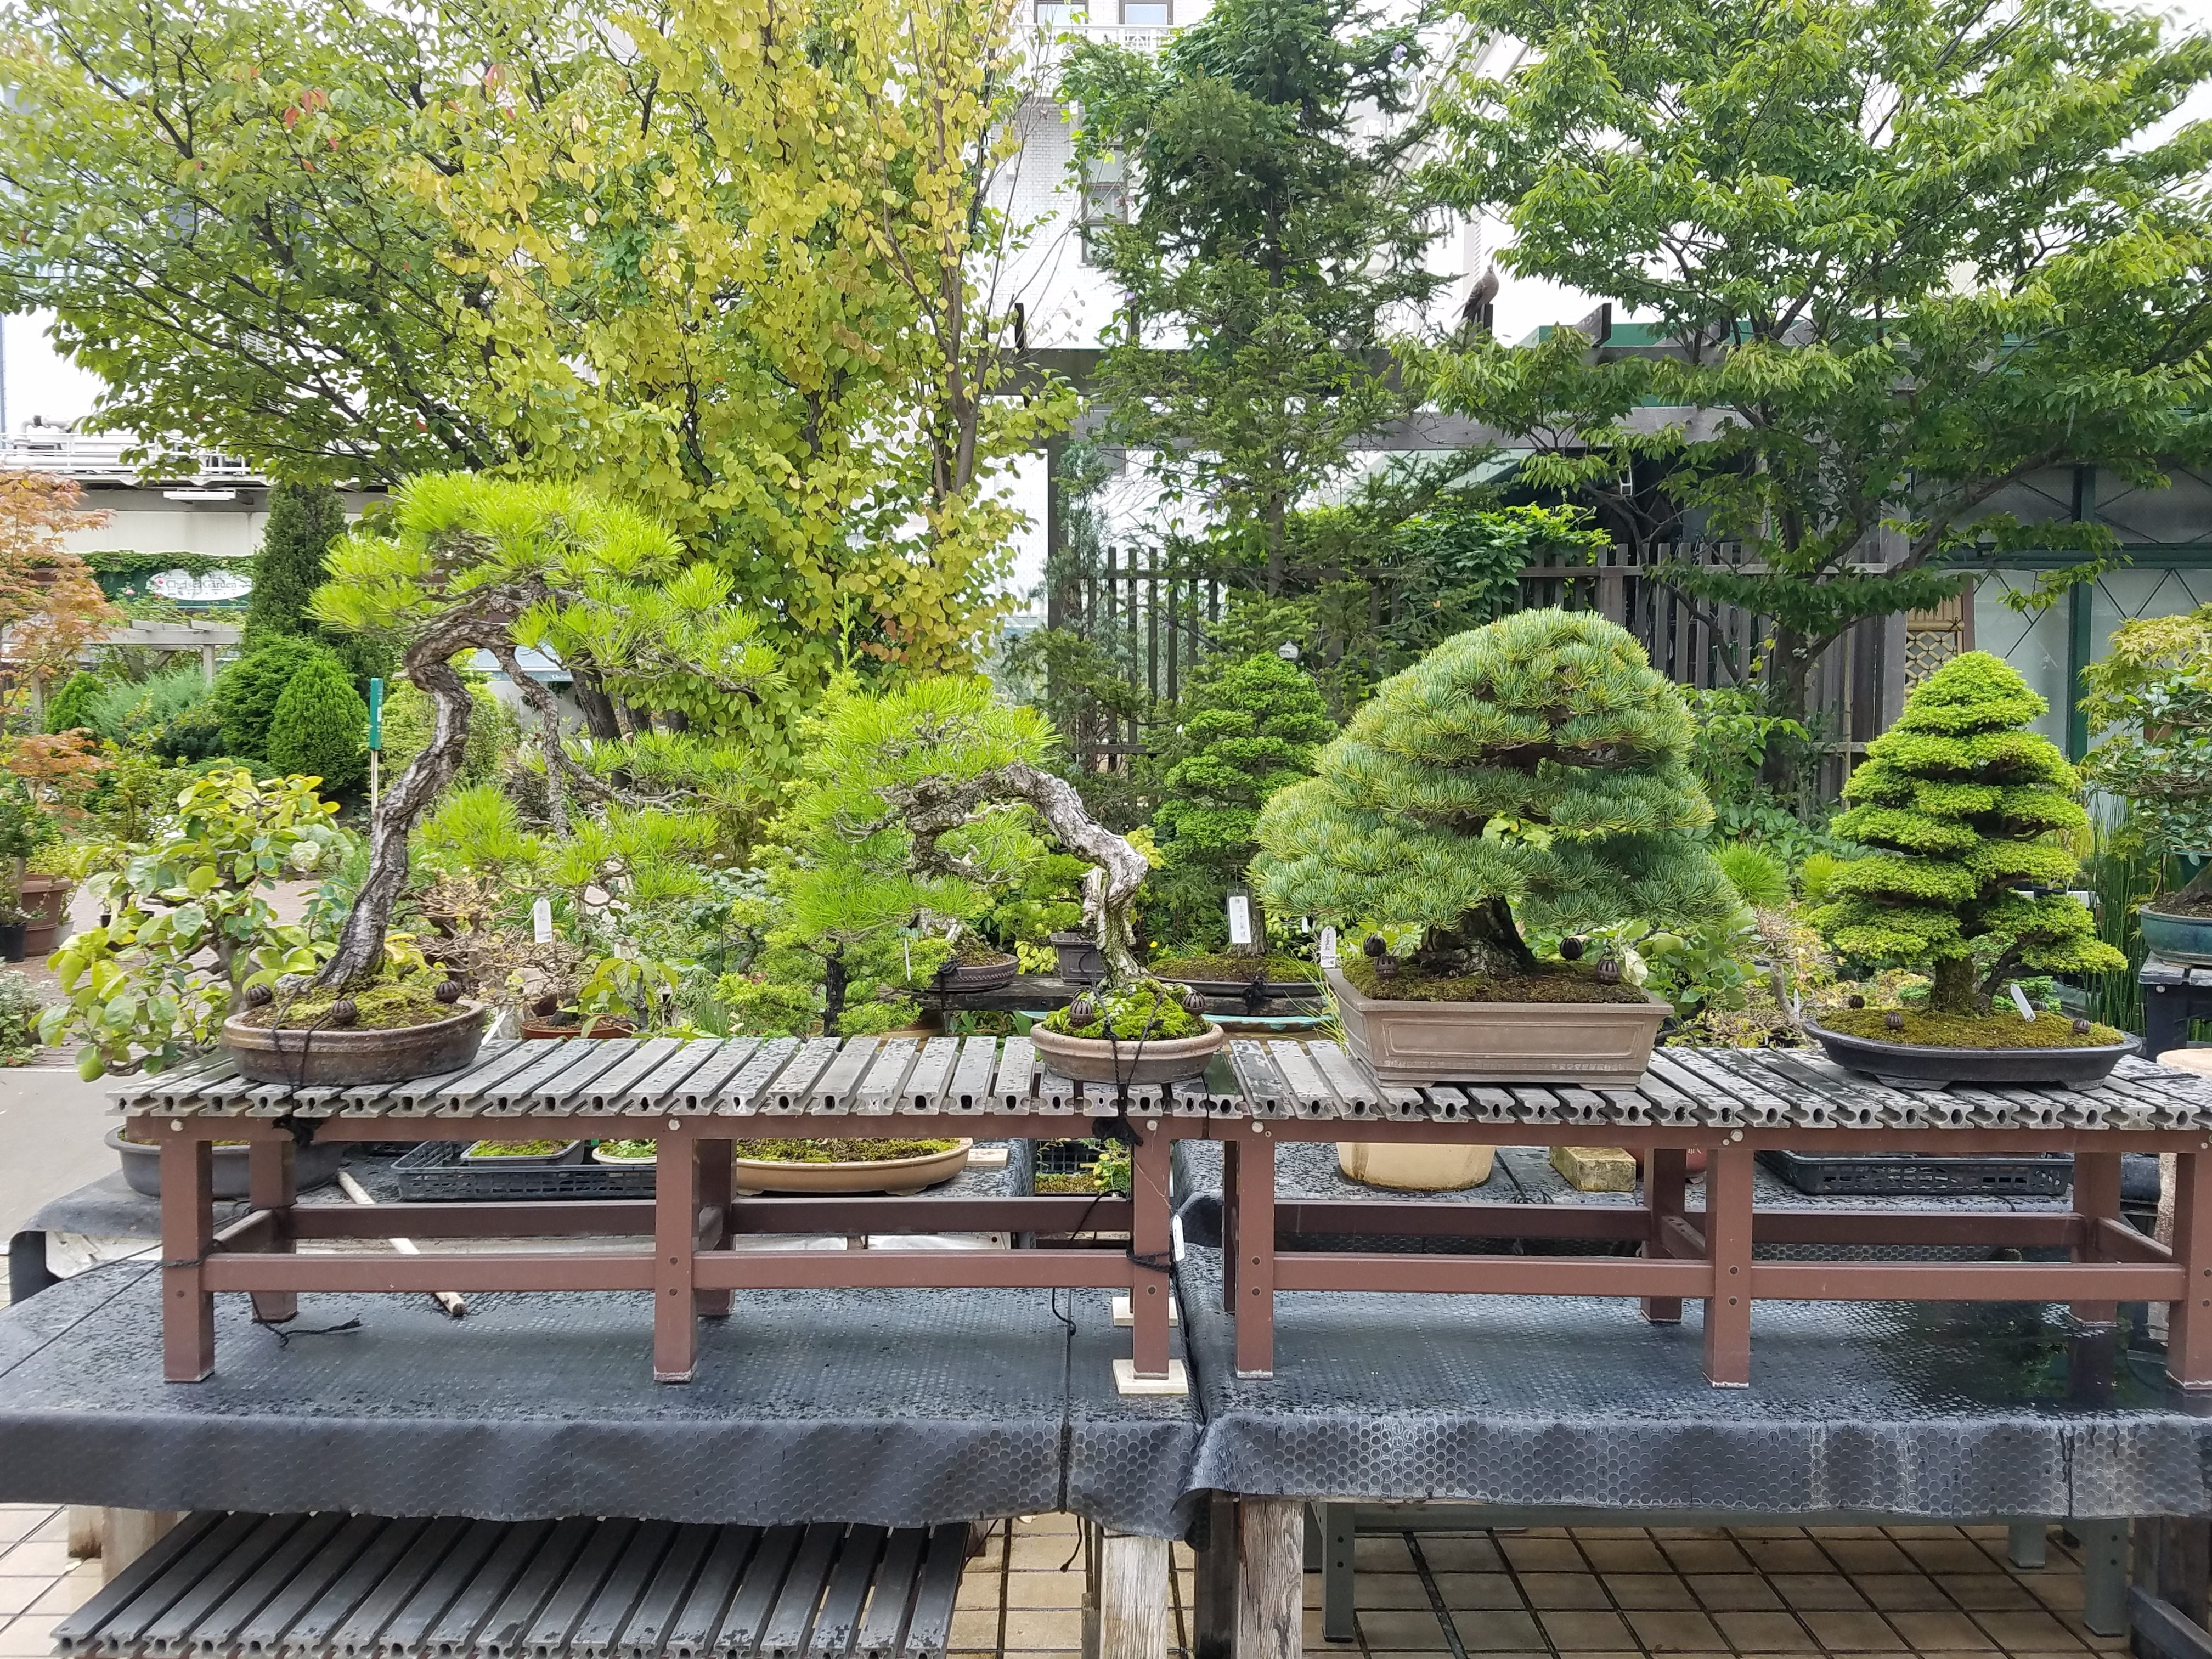 Bonsai for sale - large one on right costs 1,000,000 yen ($10,000)!